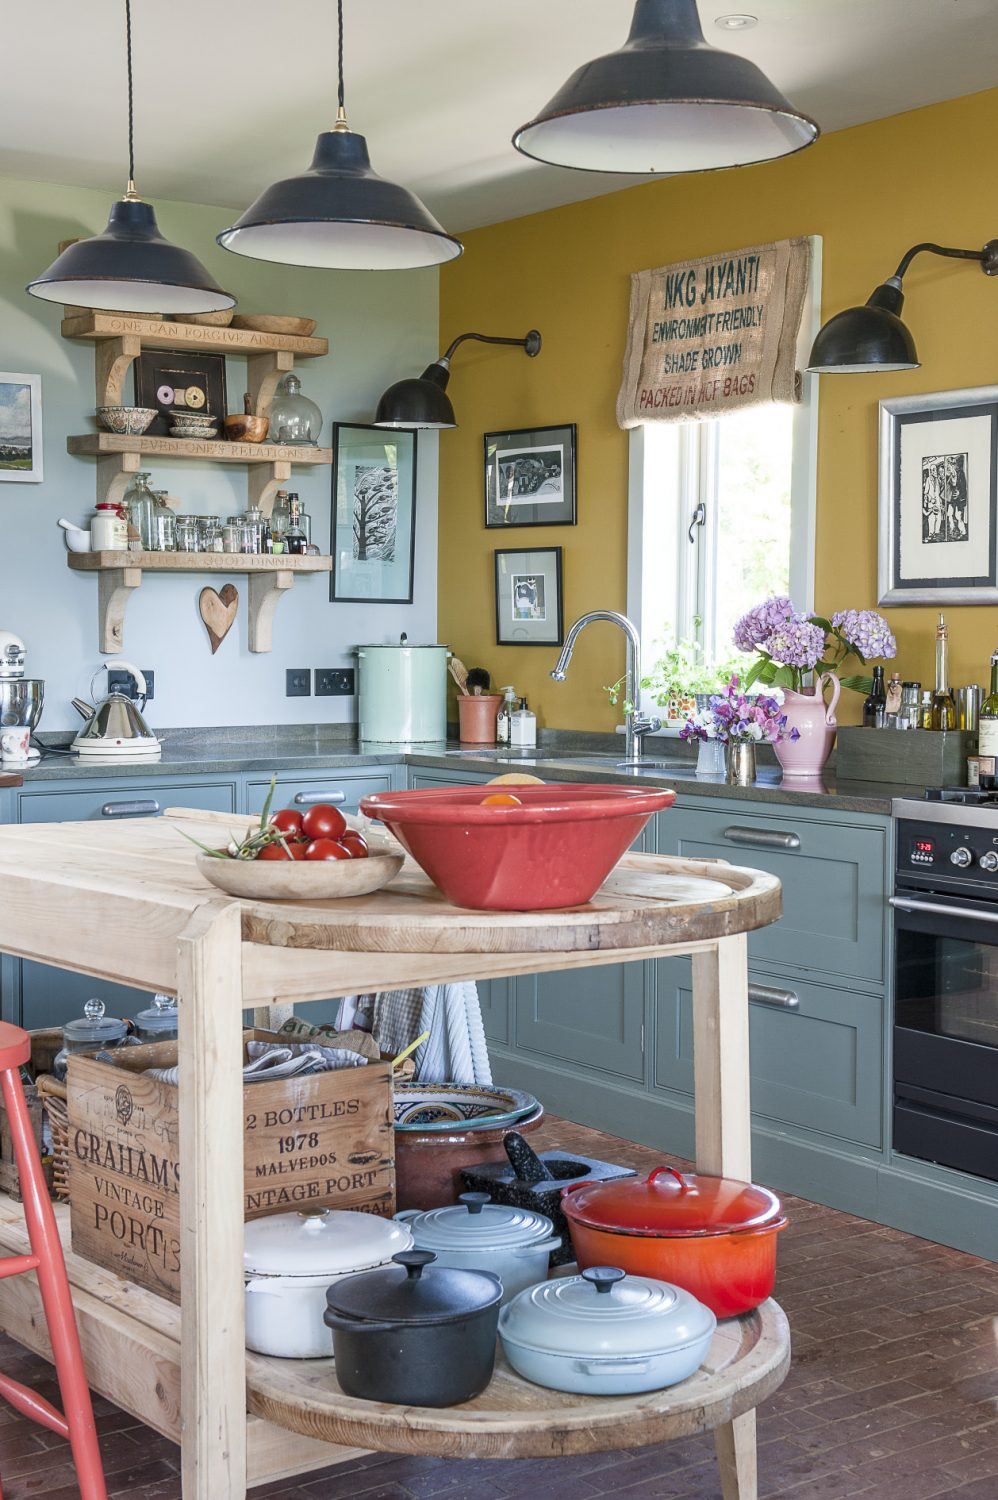 Visitors pass through the hallway into a spacious kitchen/dining room where Philippa's enviable flair for pulling-off imaginative colour combinations is evident in the contrasting shades of faded teal and mustard yellow that she has chosen to paint the units and walls